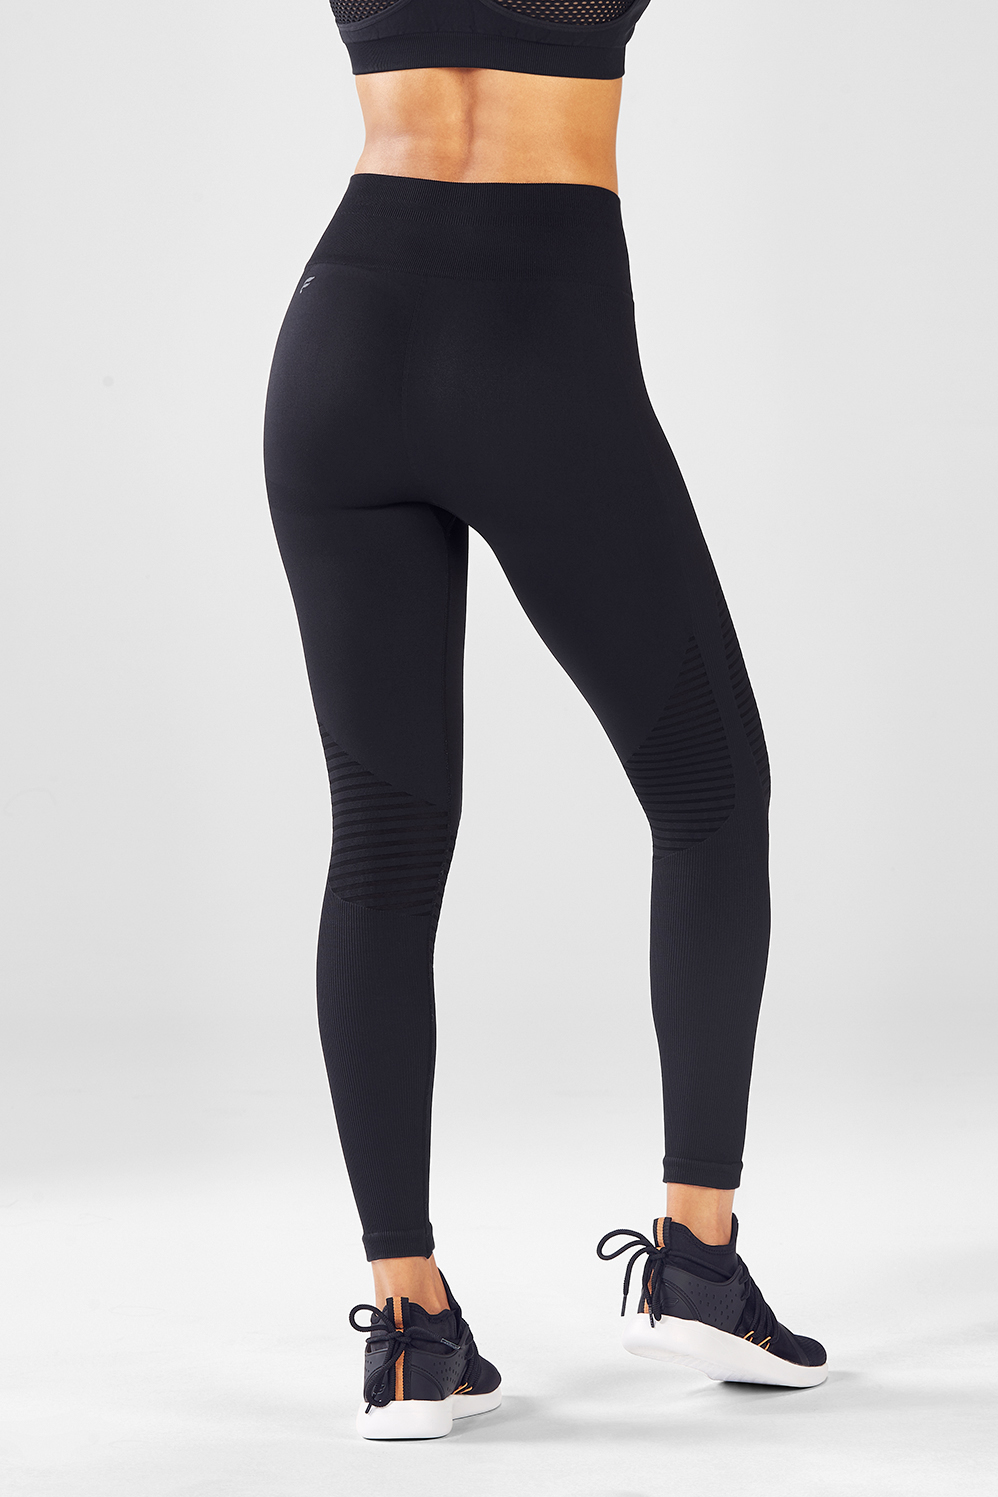 5a77bc4d38 Seamless High-Waisted Jaquard Legging - Fabletics